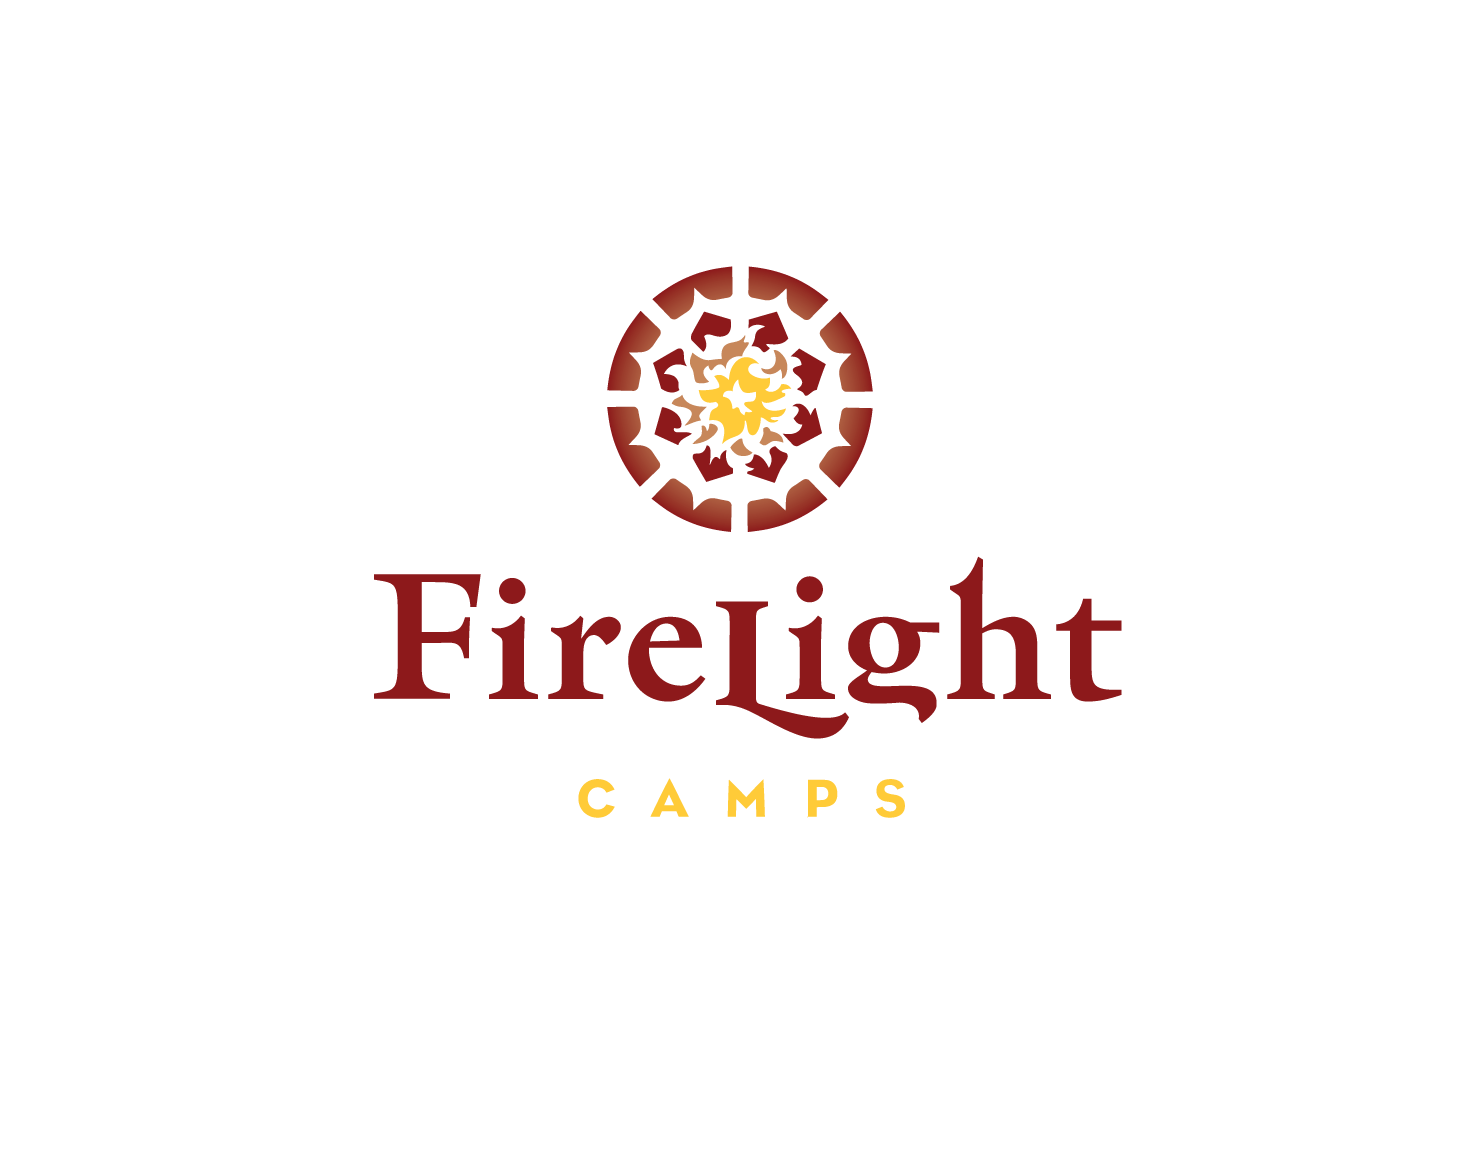 Firelight-Camps-logo-full-color-(pms-1805_115)- (1).png